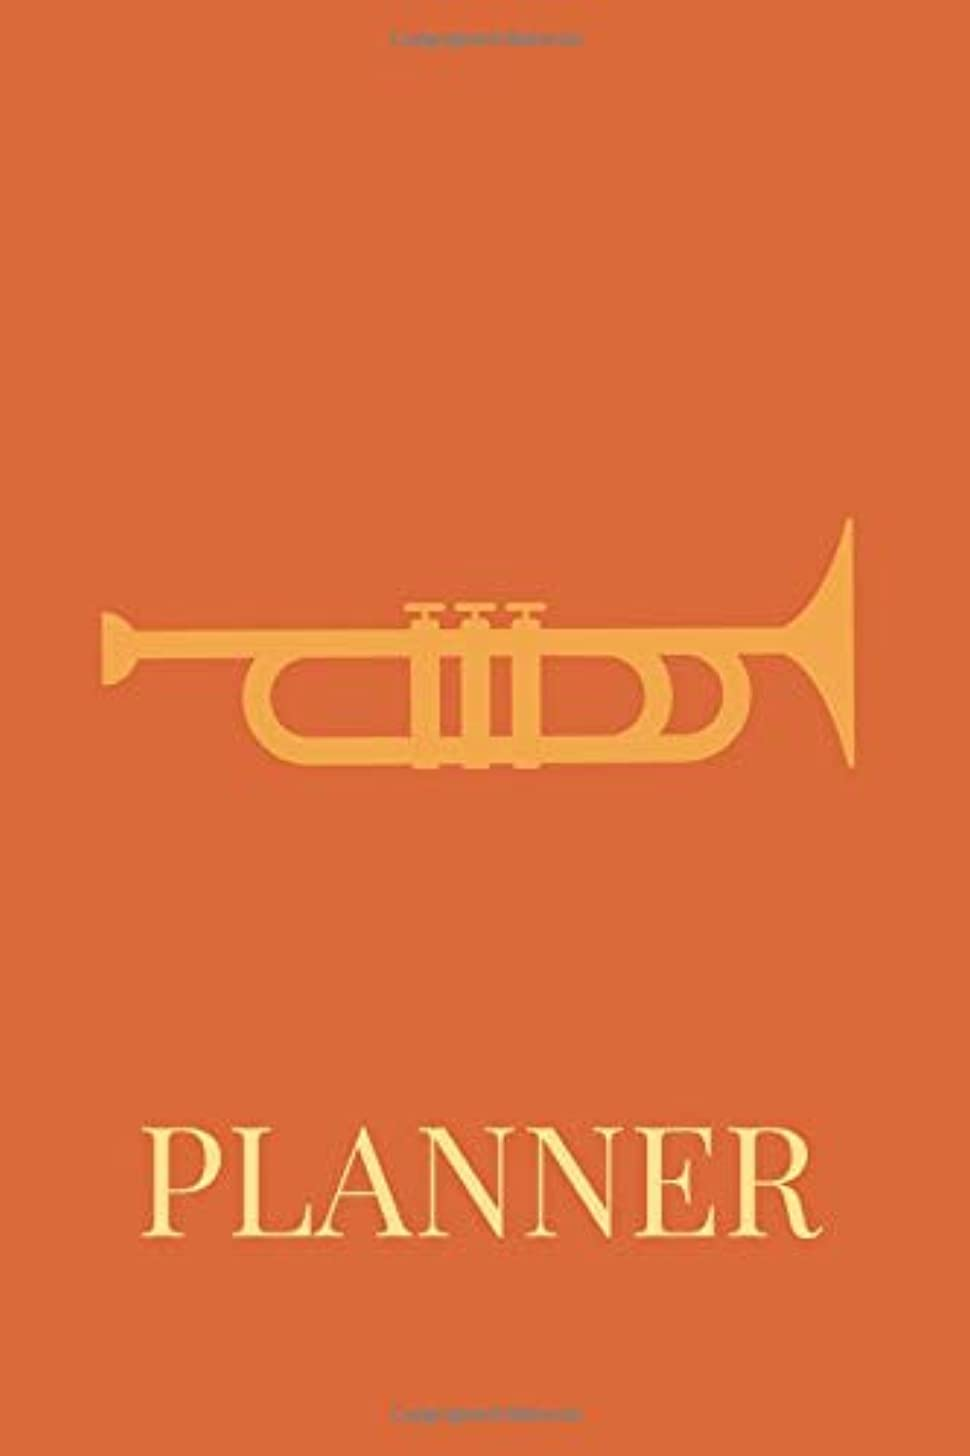 Planner: Undated 52 Weeks Organizer With Weekly Agenda, Goal Setting, Reflection And Motivational Quotes With Instrument Trumpet Cover